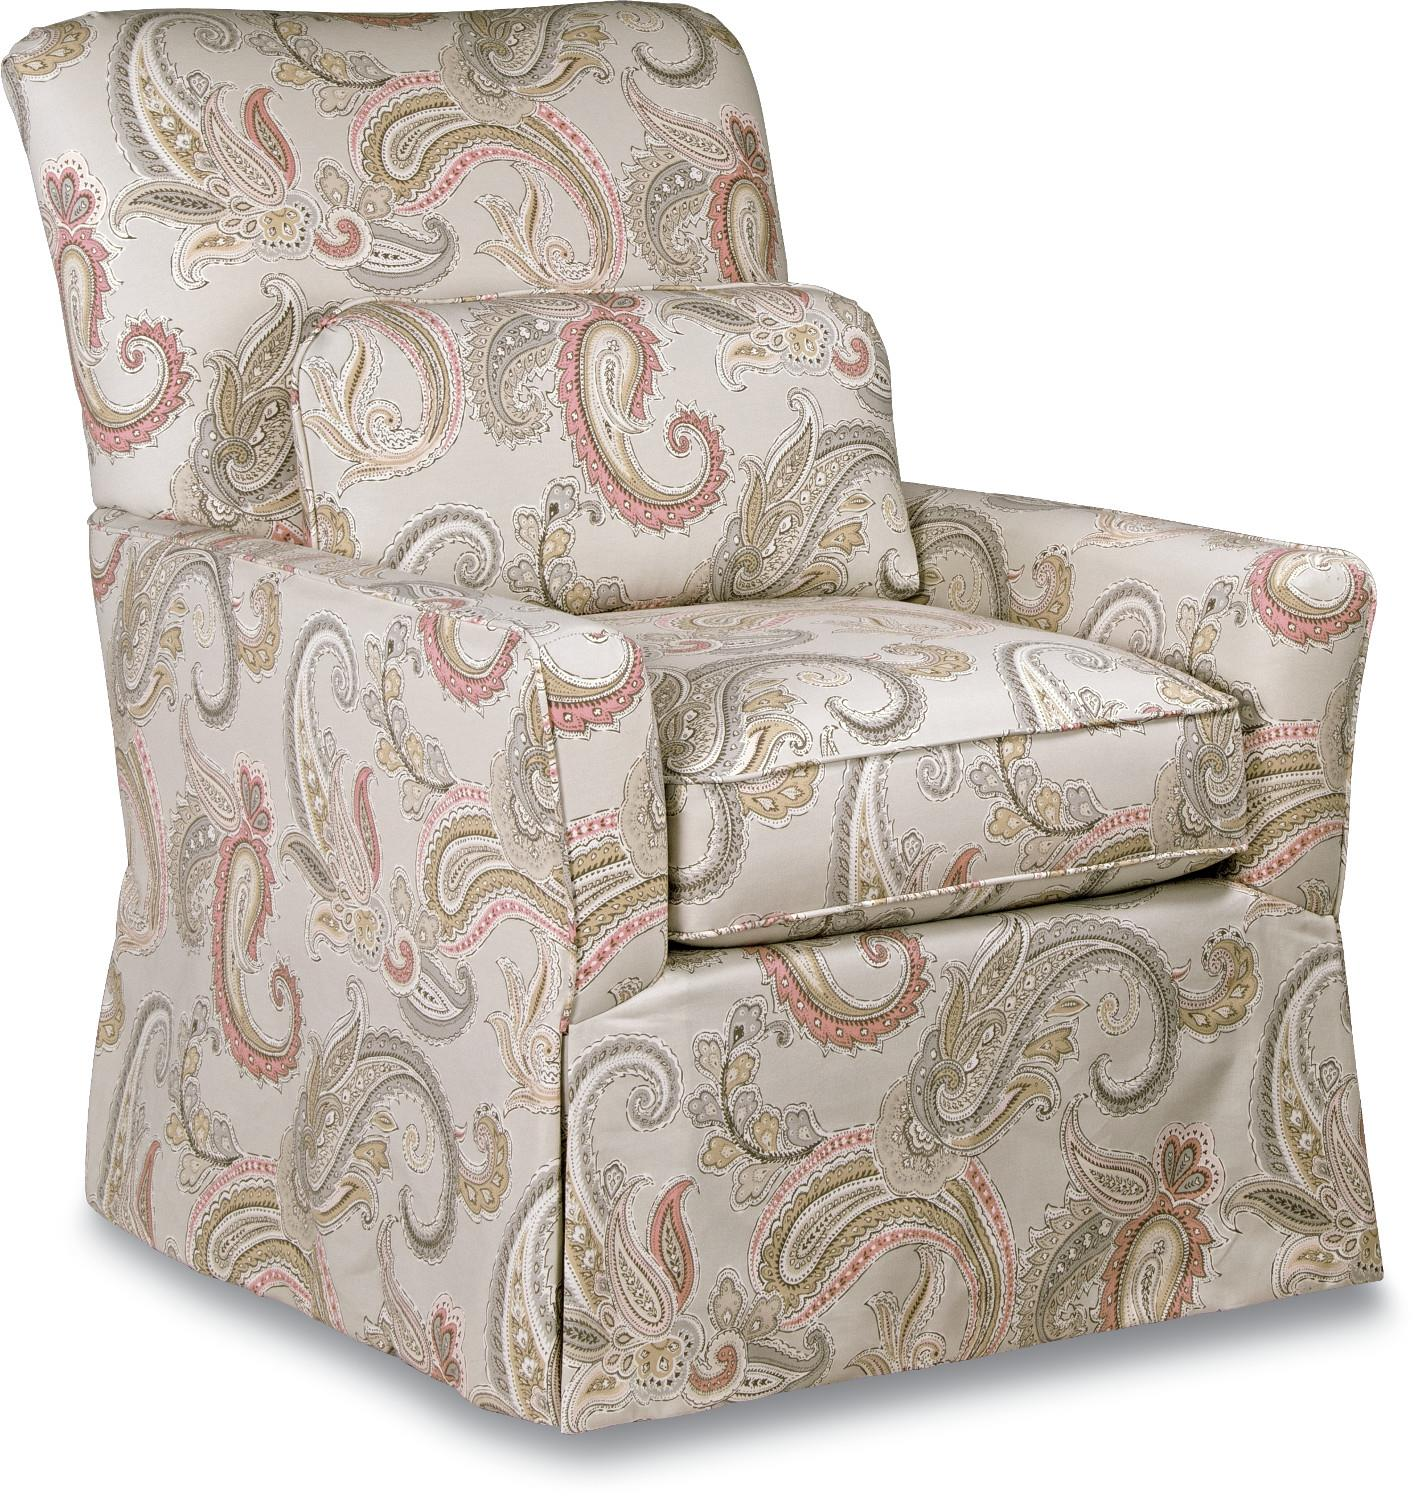 Lena Skirted Swivel Gliding Chair Premier ComfortCore® Cushion